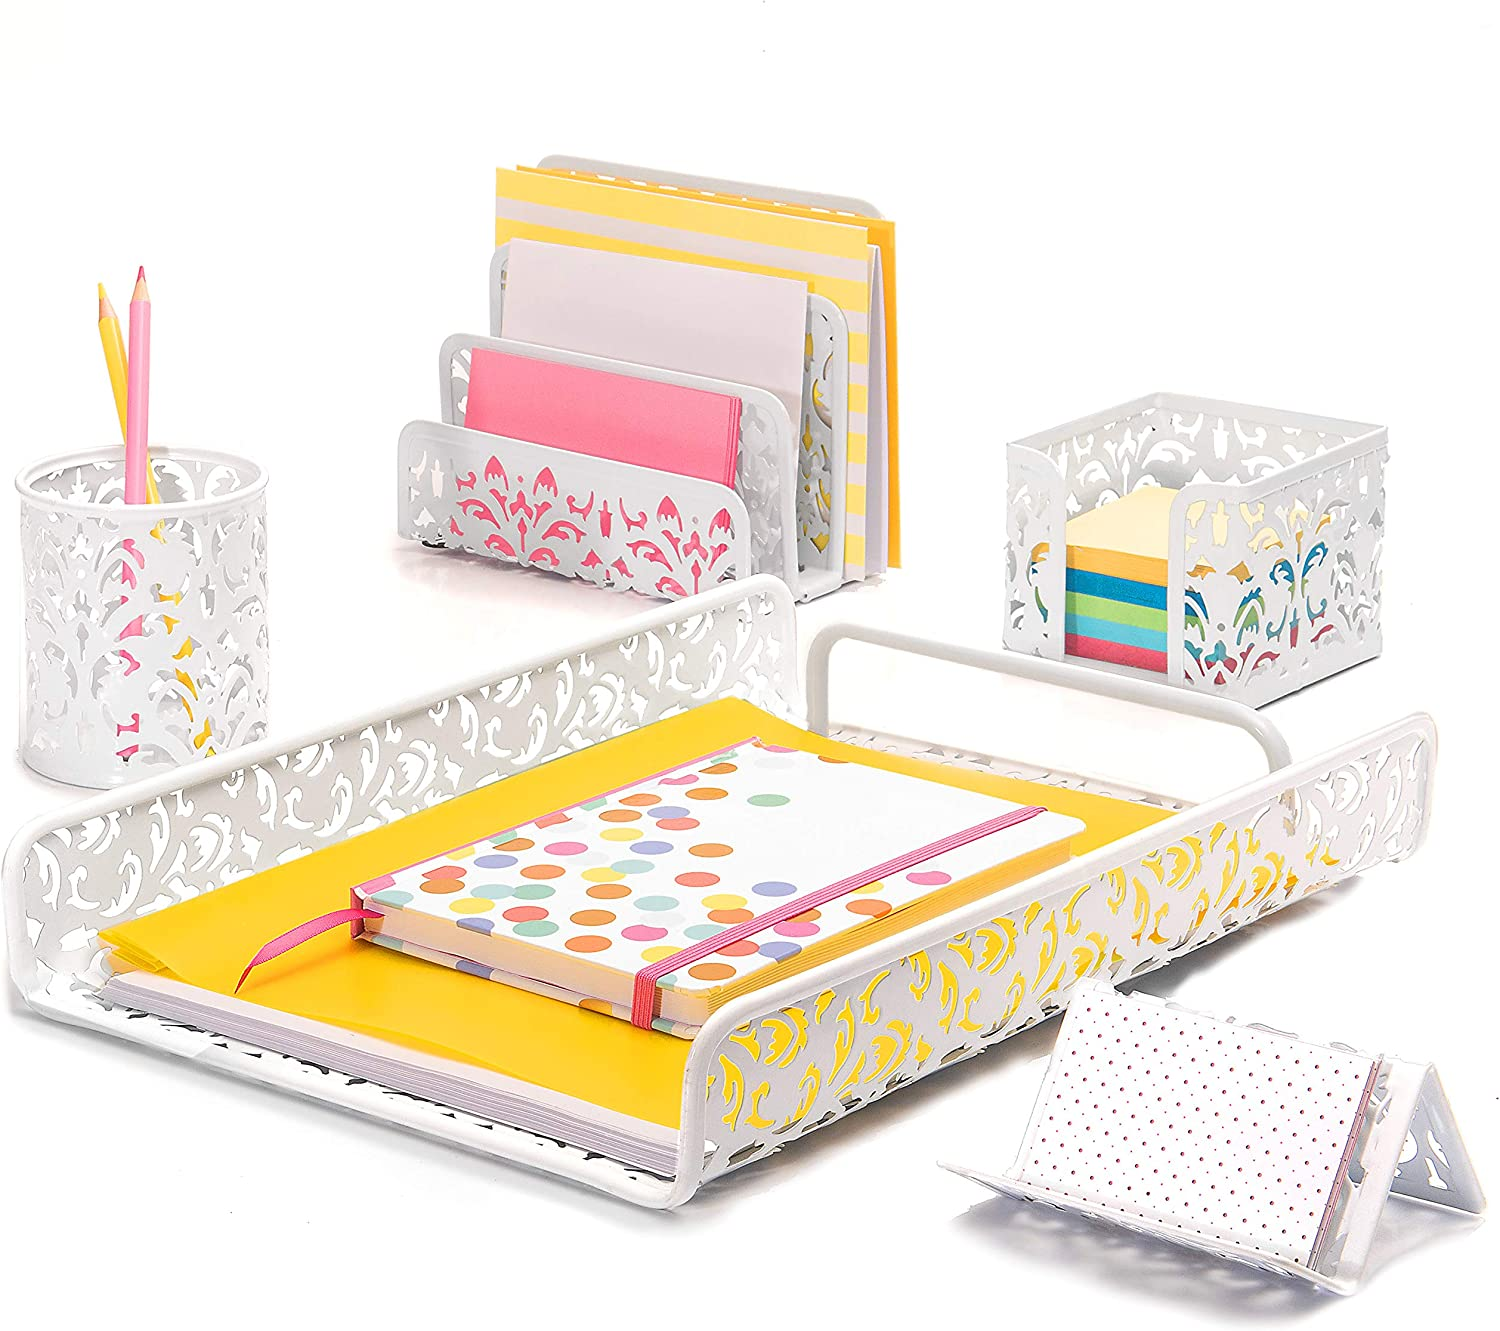 Hudstill White Cute Desk Organizer Set for Women and Girls in Damask Design with 5 Office Supplies Accessories : File Tray, Mail Sorter, Pen Cup, Sticky Notes Holder and Business Card Holder